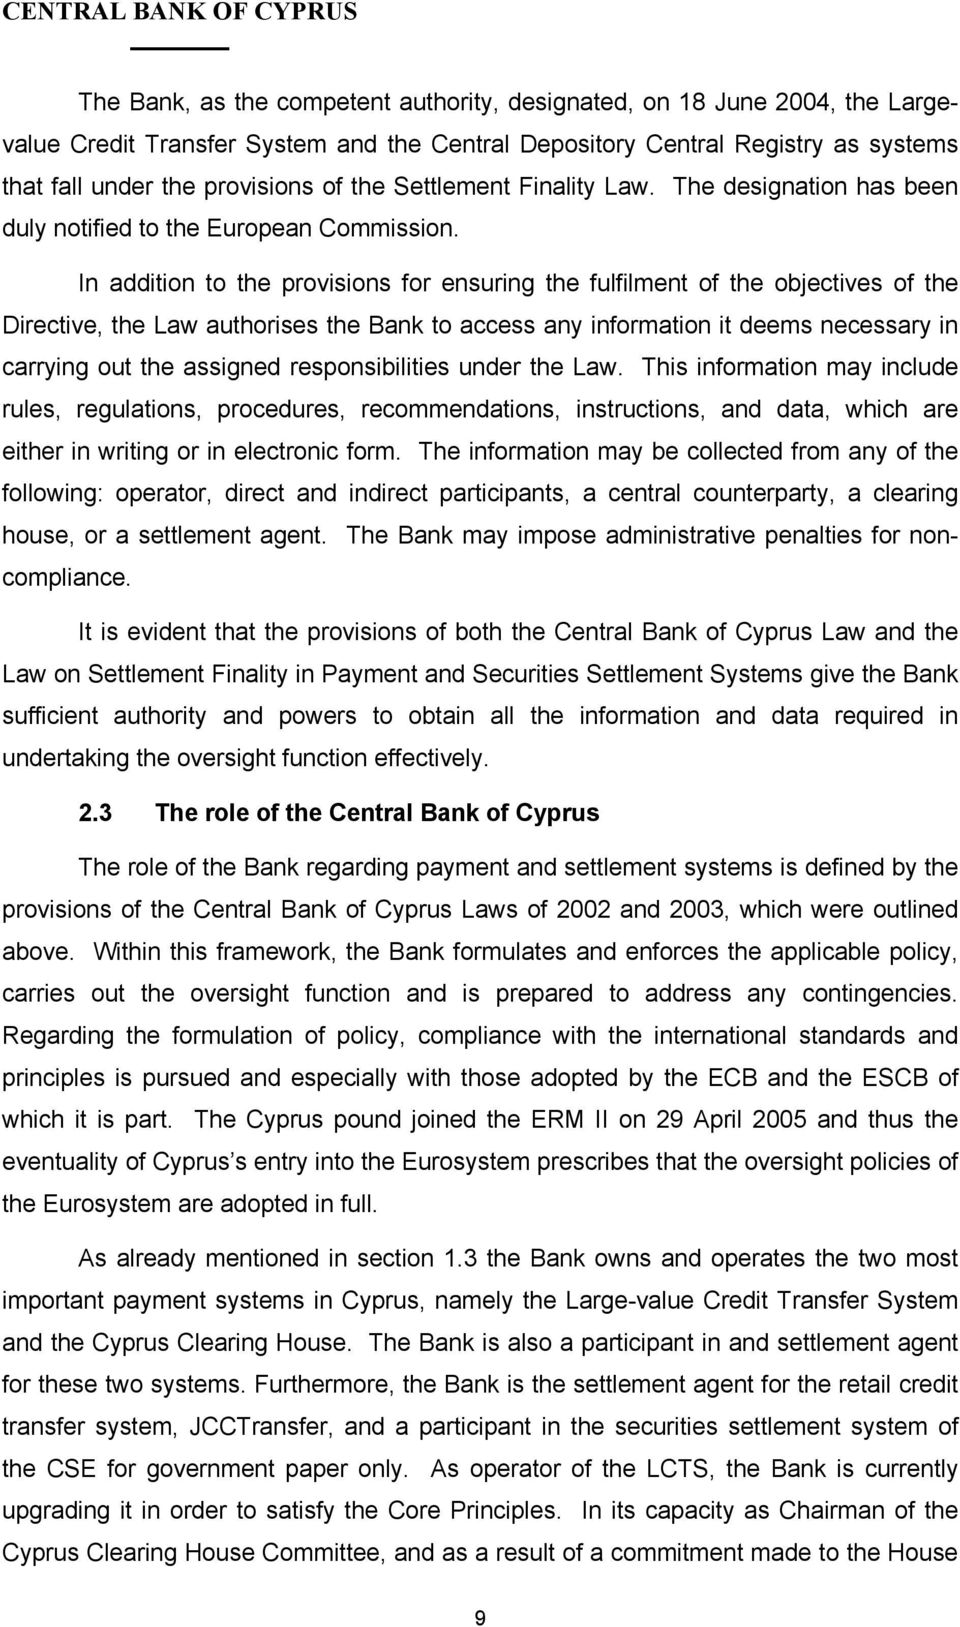 In addition to the provisions for ensuring the fulfilment of the objectives of the Directive, the Law authorises the Bank to access any information it deems necessary in carrying out the assigned